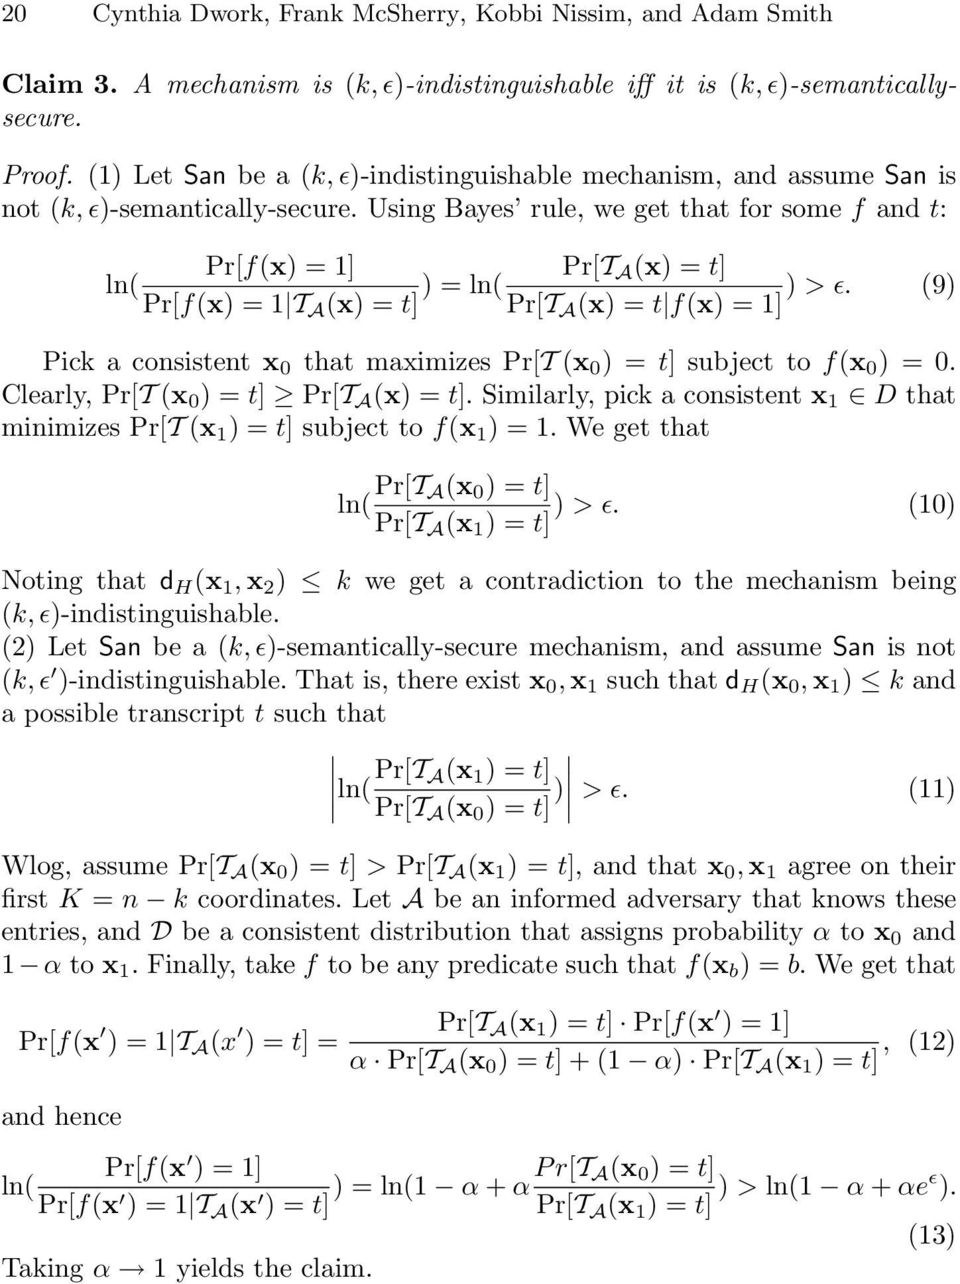 Using Bayes rule, we get that for some f and t: Pr[f(x) = 1] ln( Pr[f(x) = 1 T A (x) = t] ) = ln( Pr[T A (x) = t] ) > ɛ.